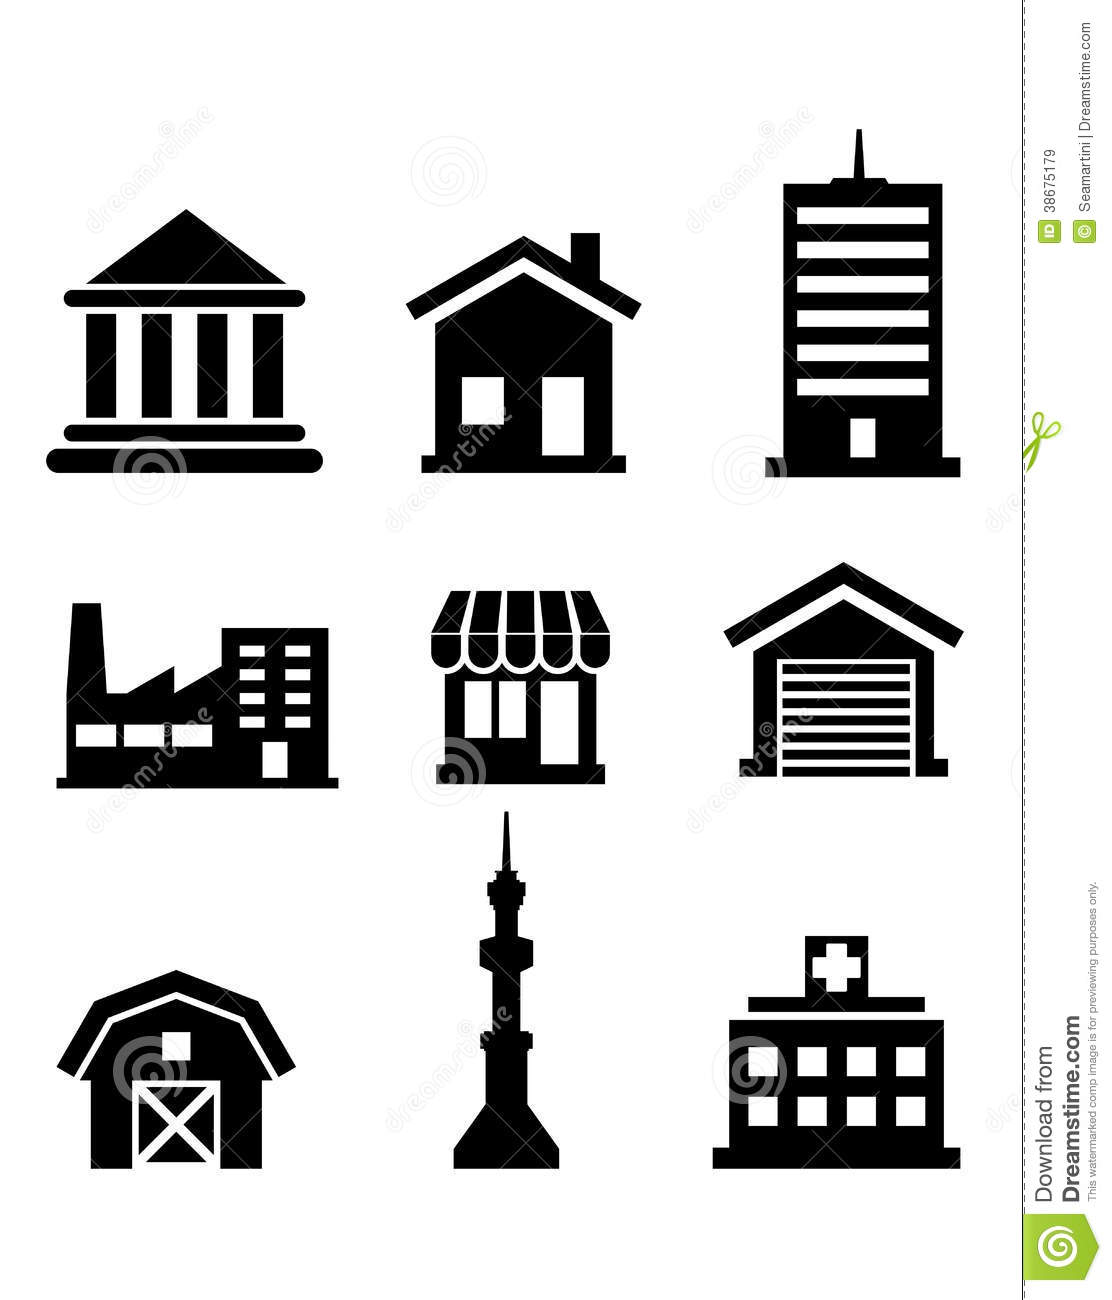 Gebouwen En Architecturale Pictogrammen Vector Illustratie